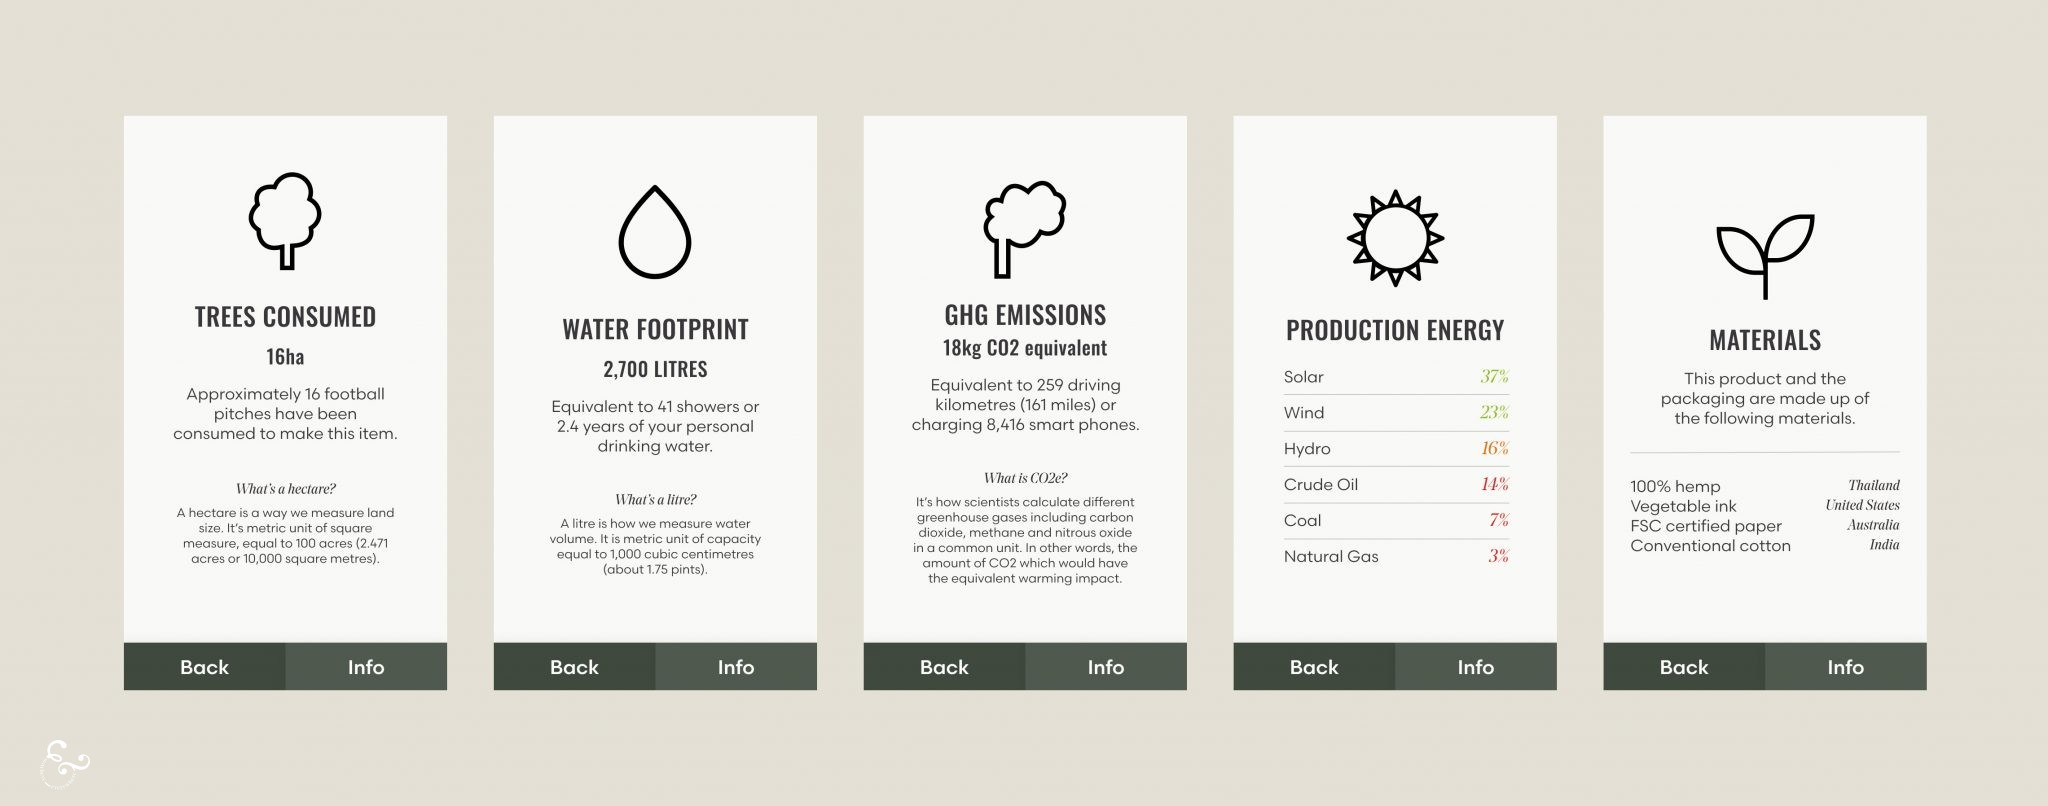 Product impact label app - Nowhere & Everywhere